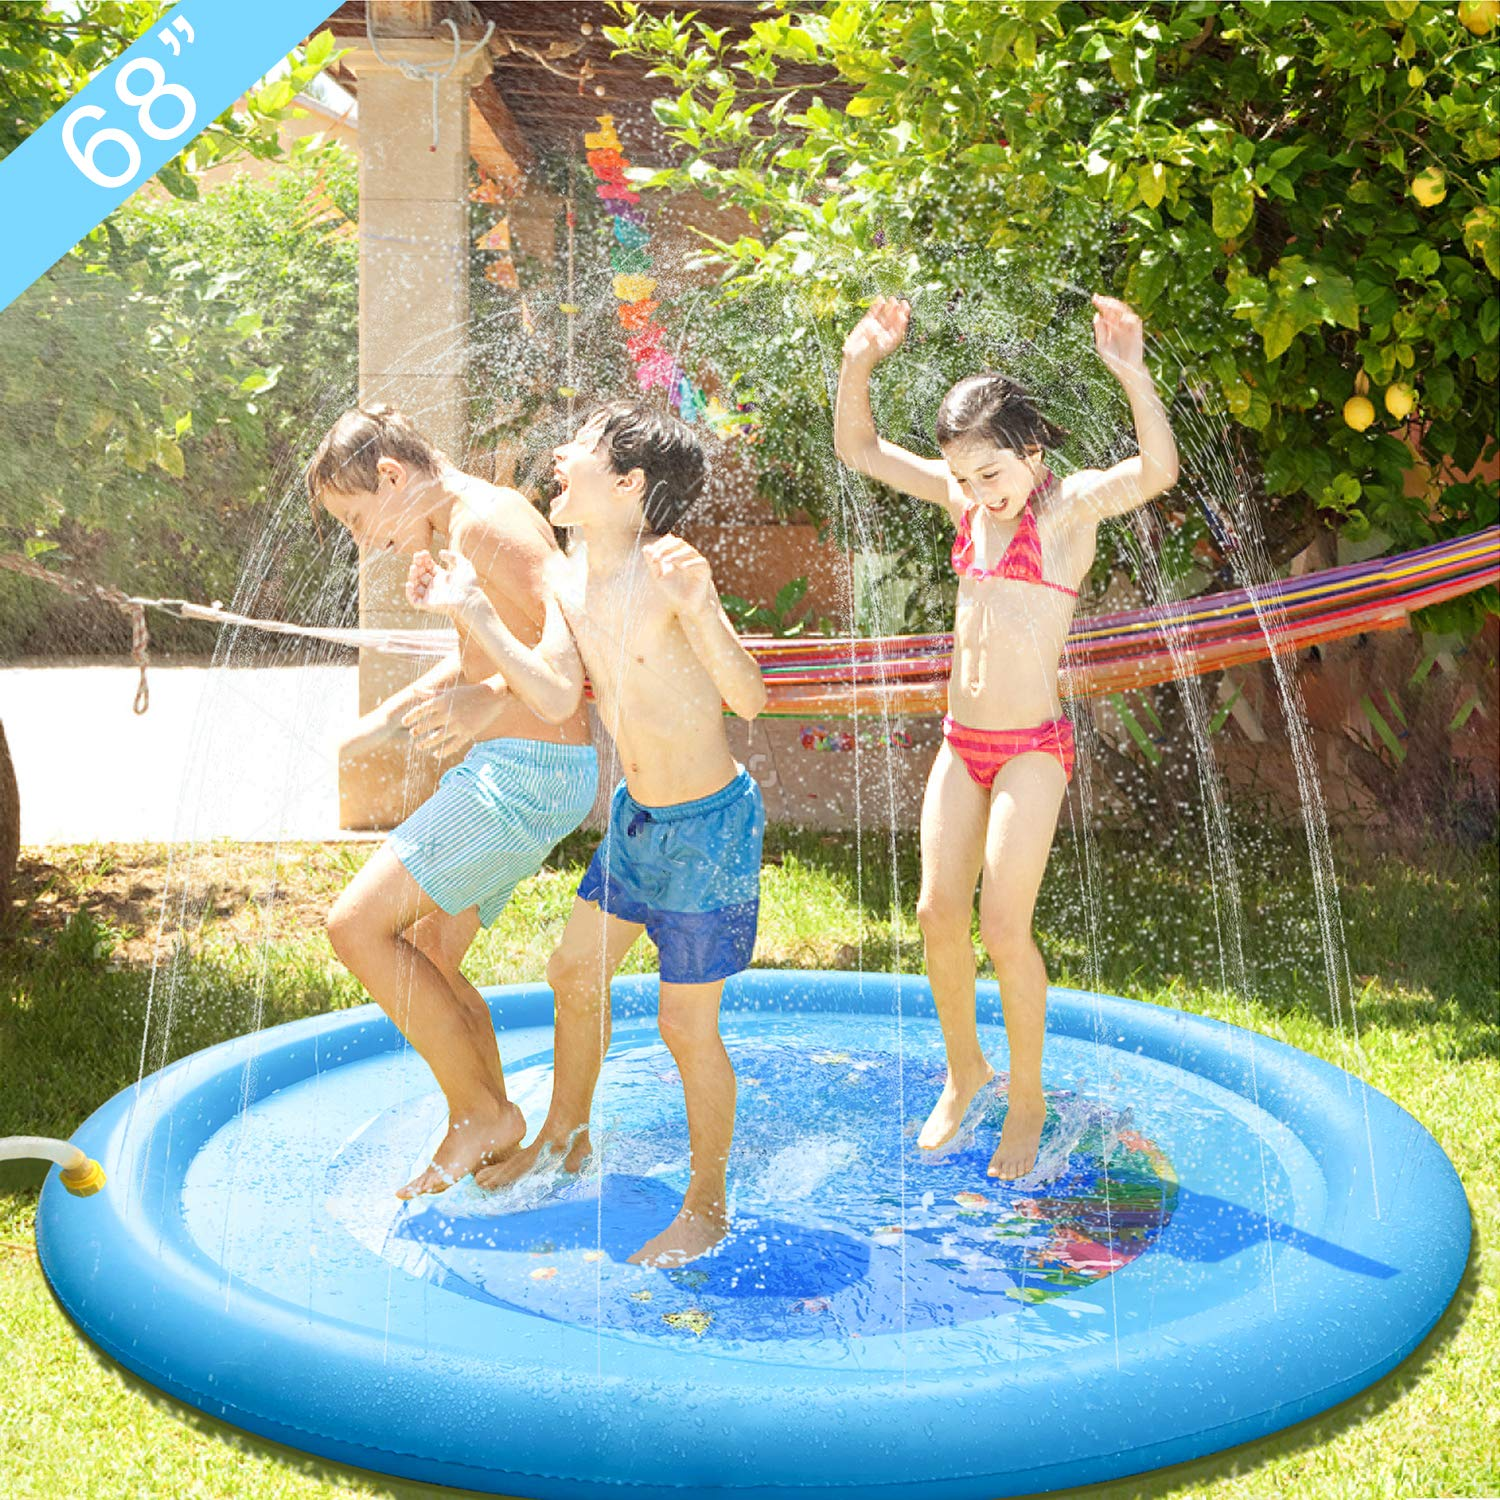 Sprinkler Pad Splash Play Mat 68'' Summer Fun Backyard Play Mat Kids Outdoor Party Sprinkler Toy Inflatable Outdoor Water Toys for Children Kids Babies Toddlers Boys Girls Blue by Aurho